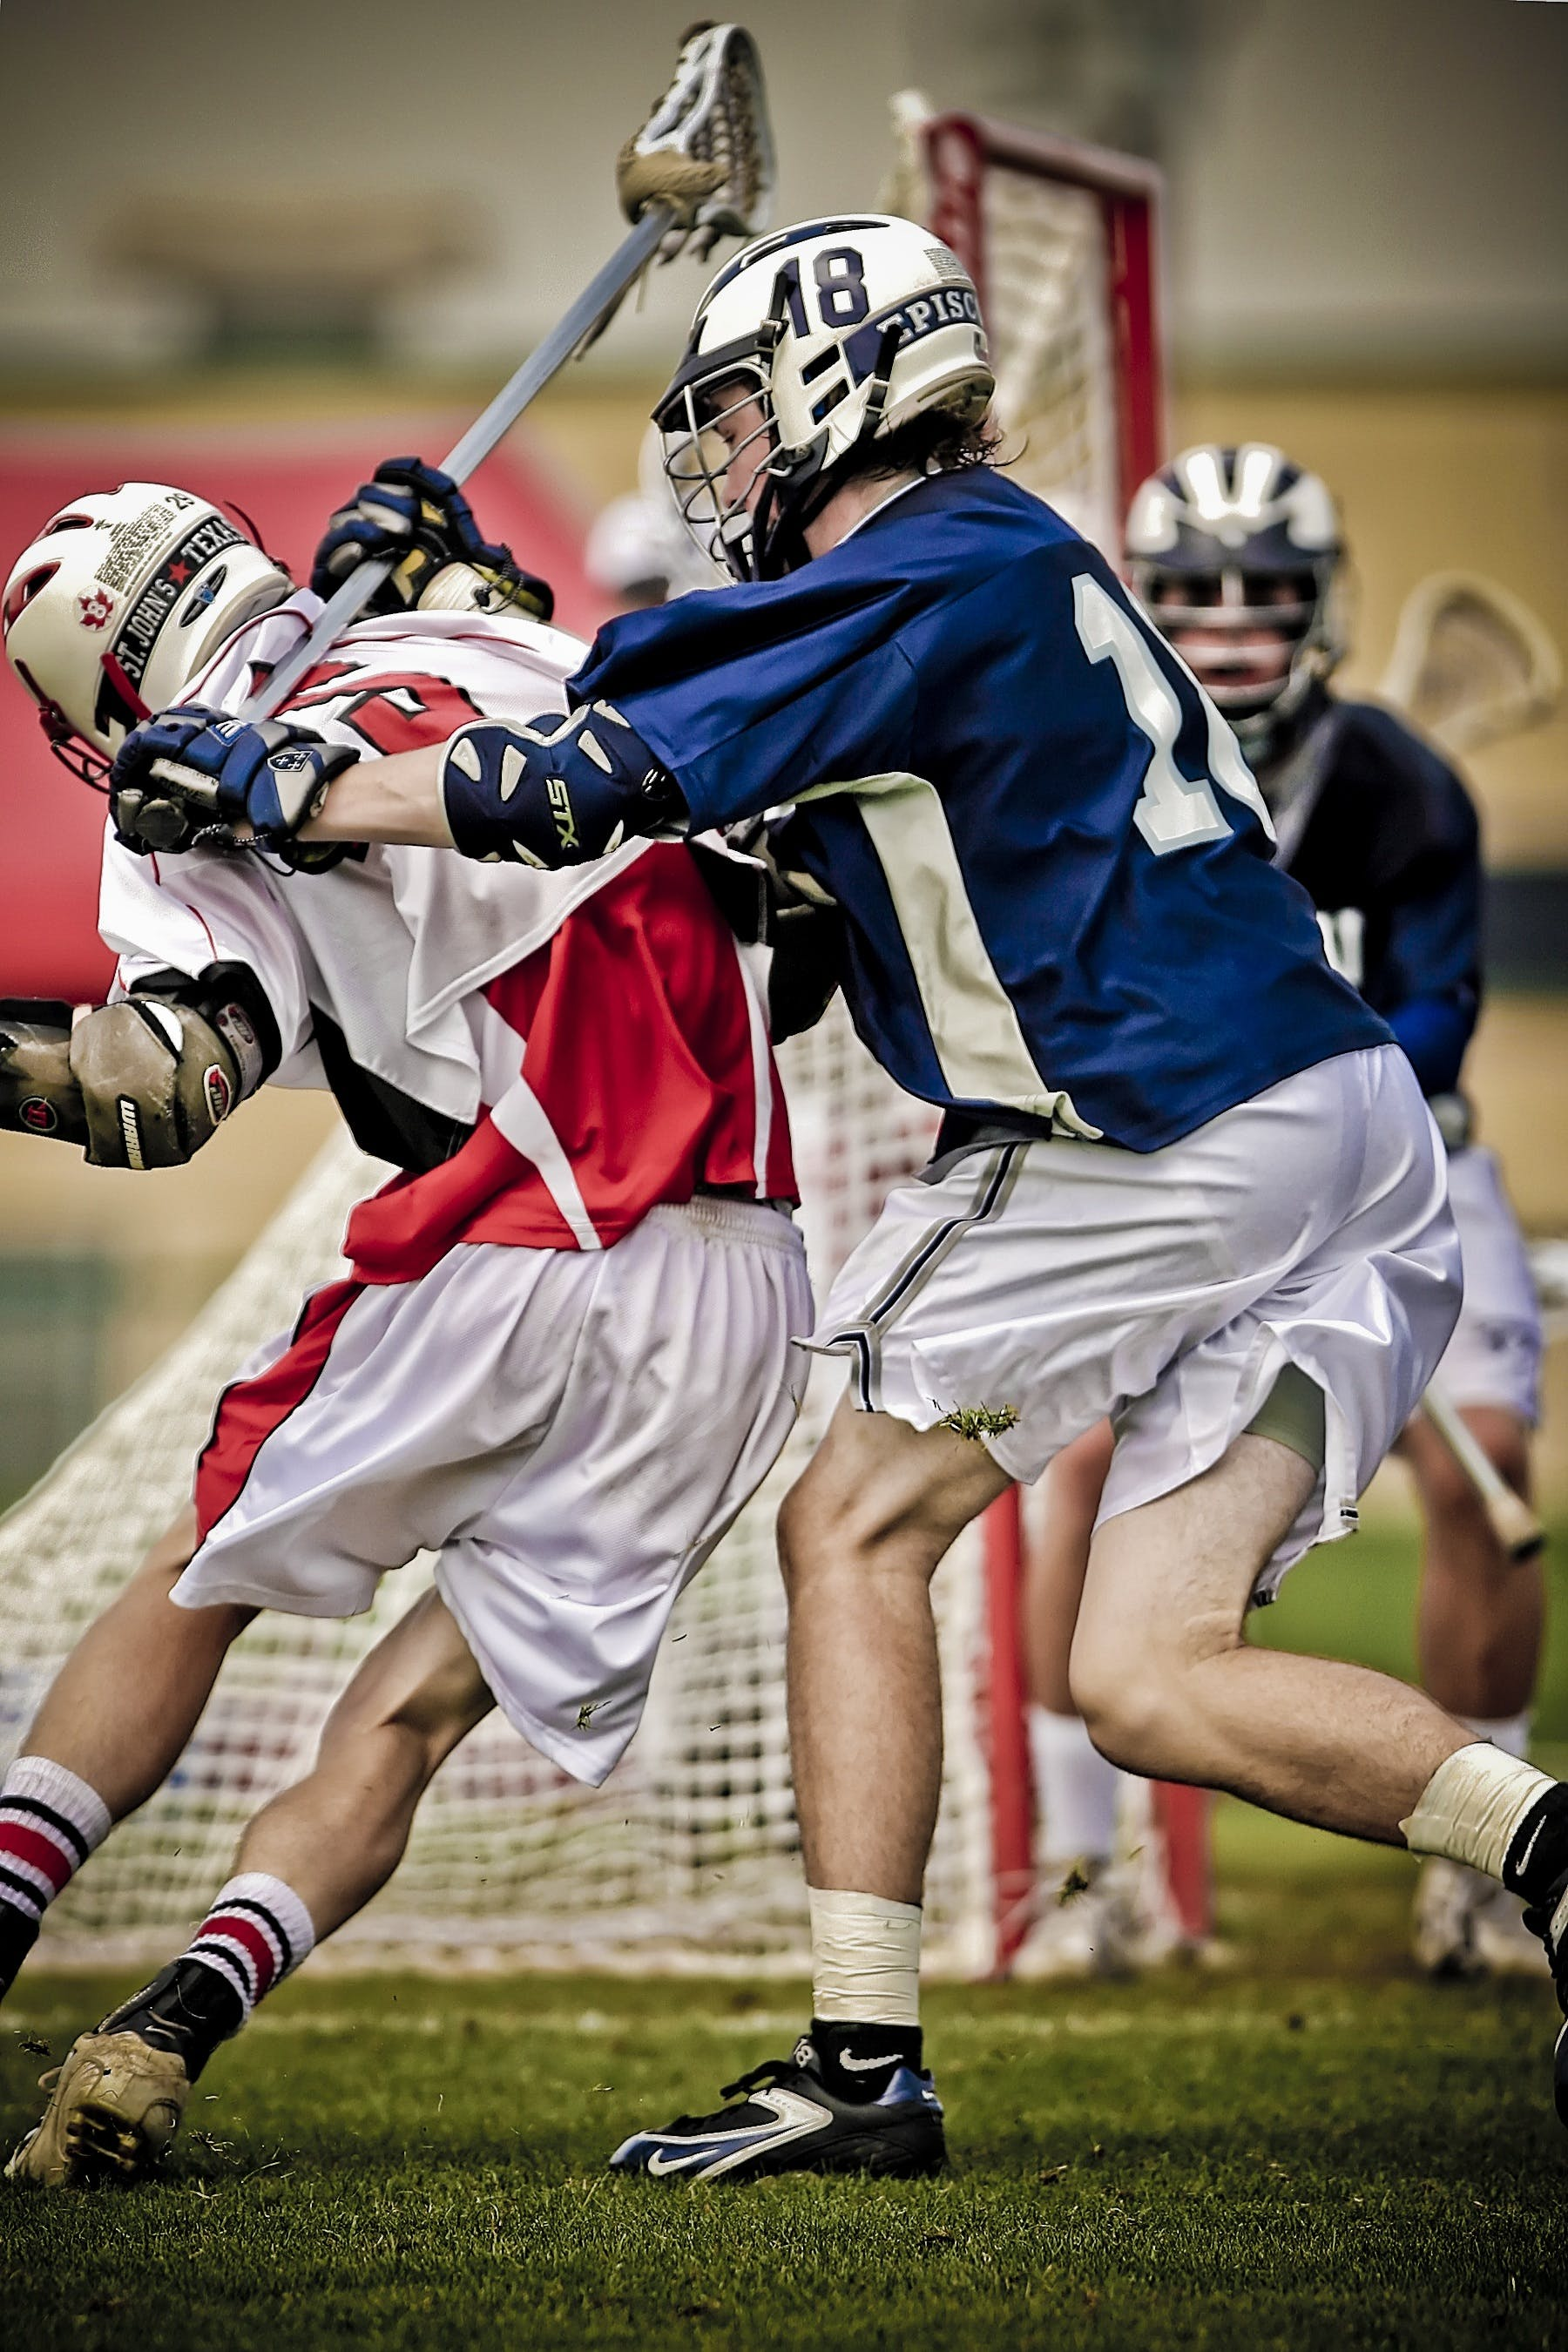 Lacross Player Battling on the Field